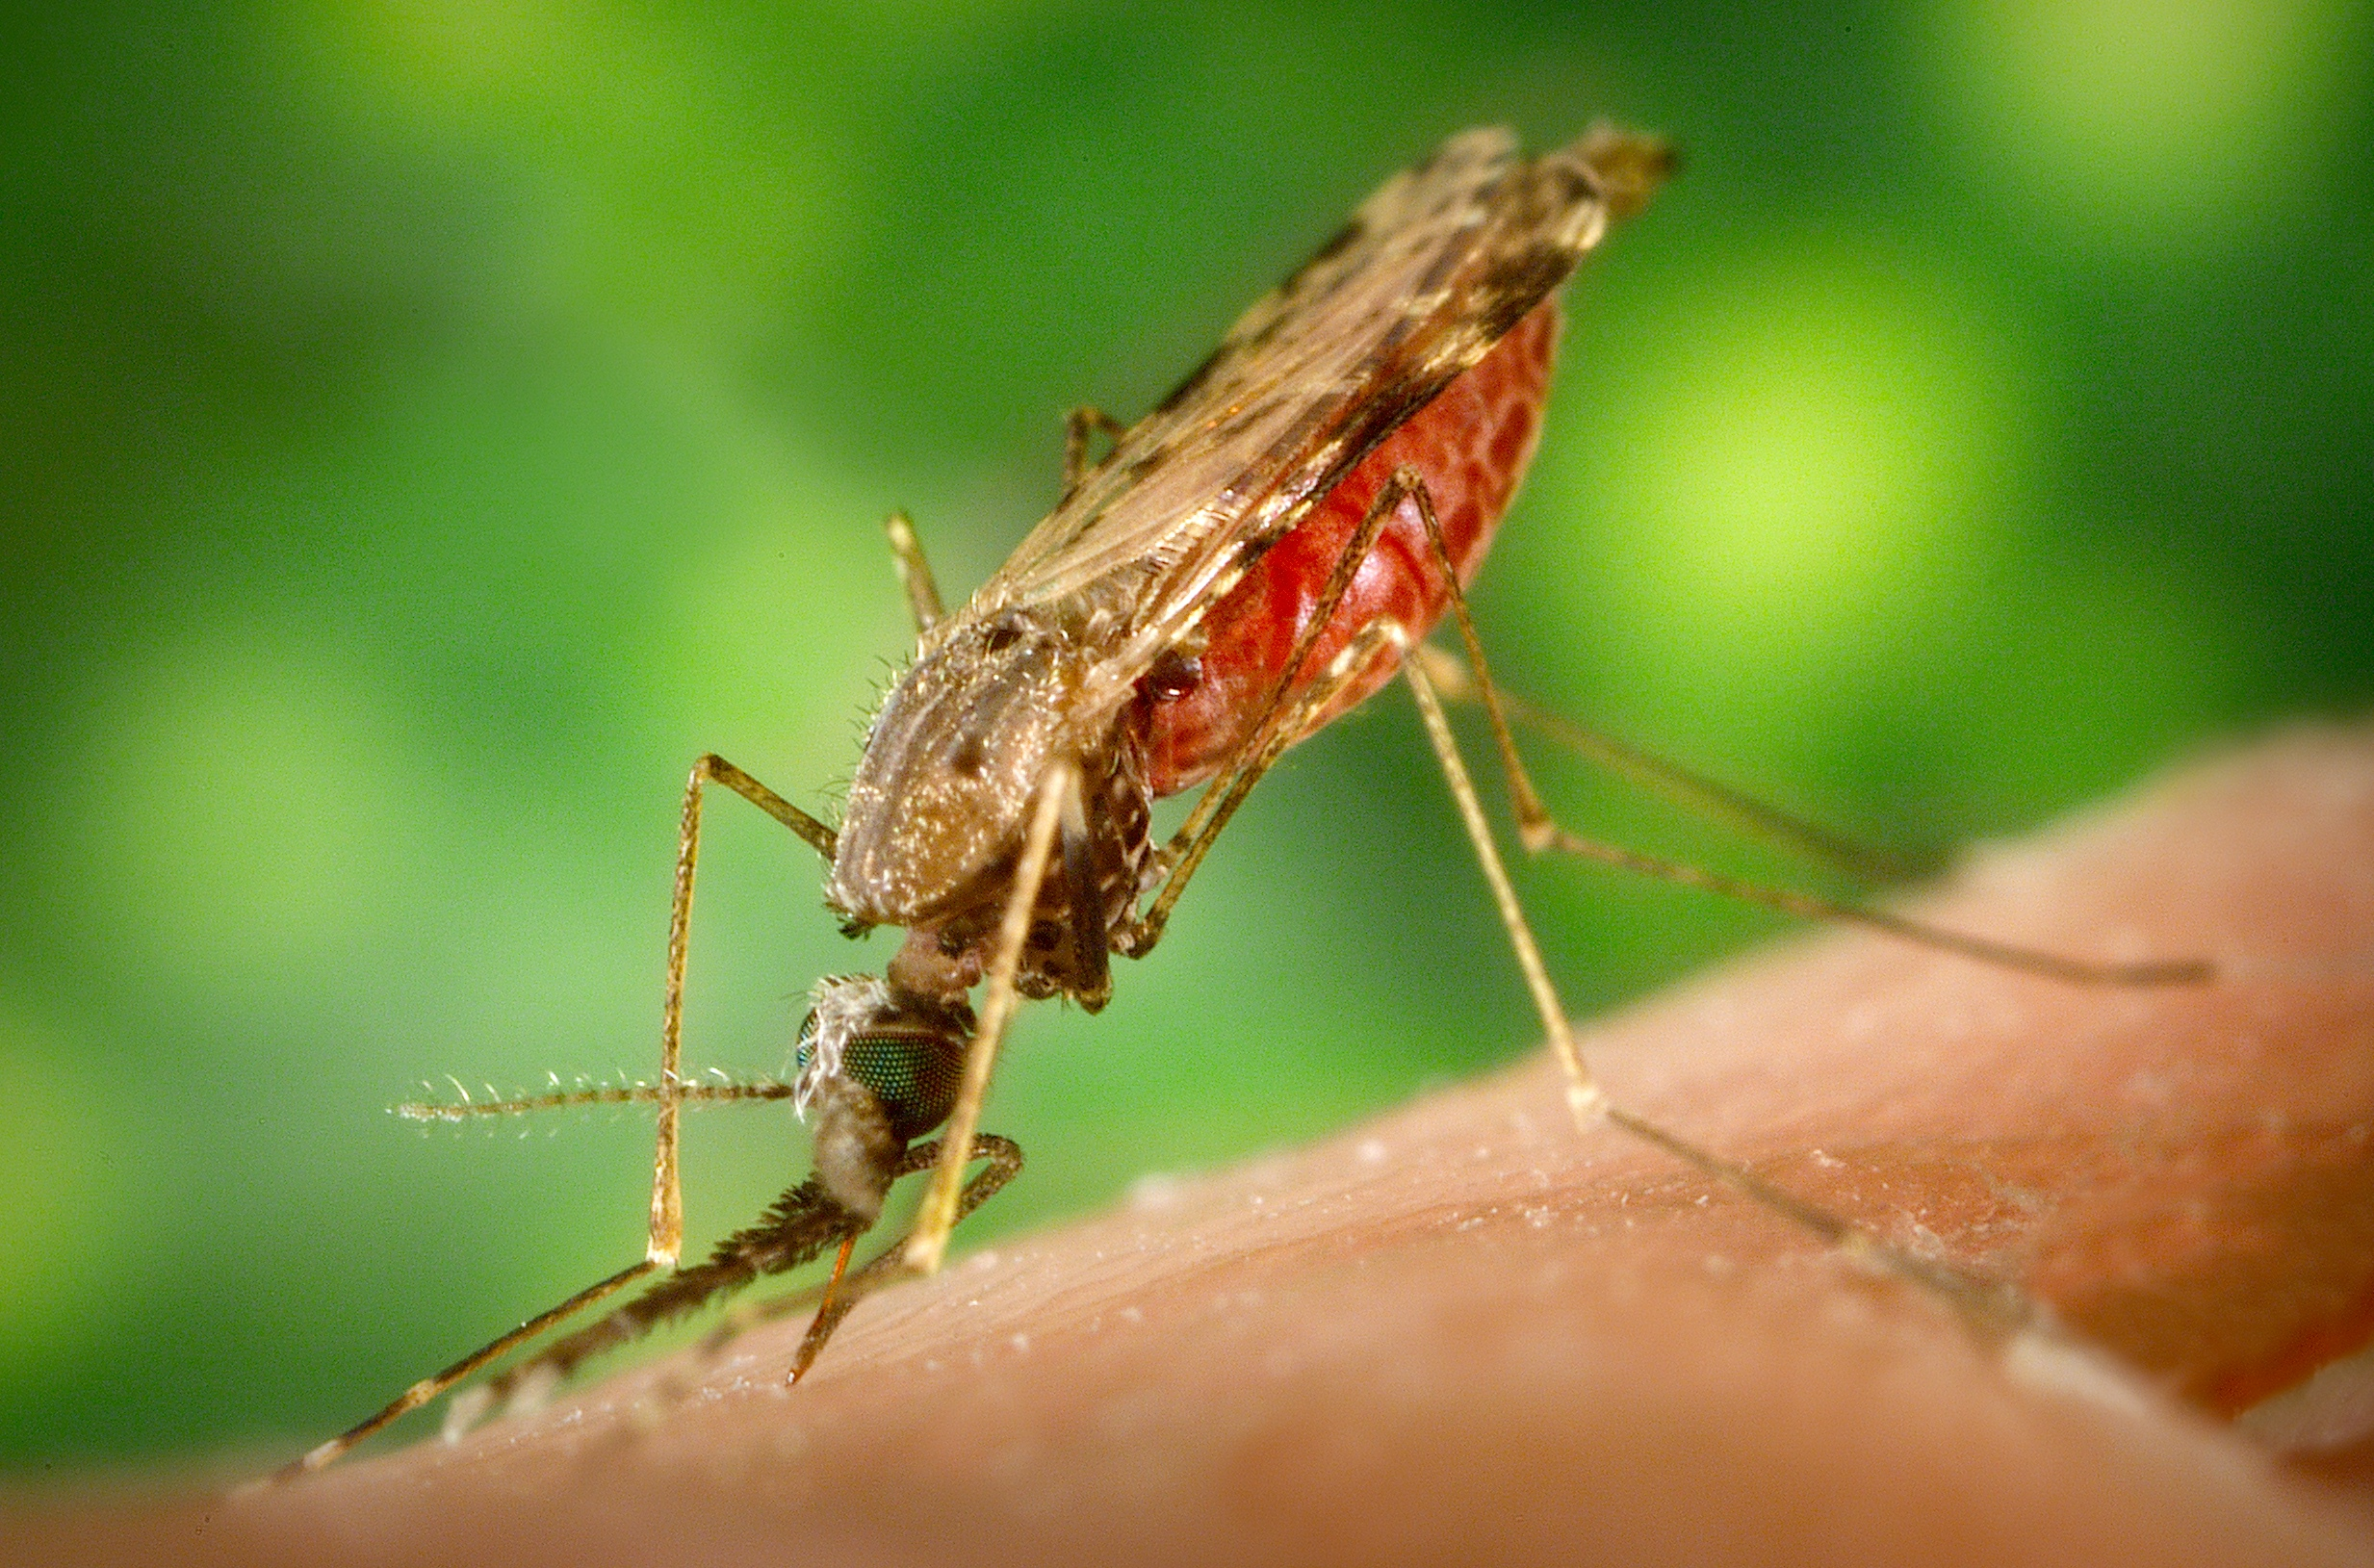 Anopheles albimanus mosquito.jpg © Photo Credit: James Gathany Content Providers(s): CDC